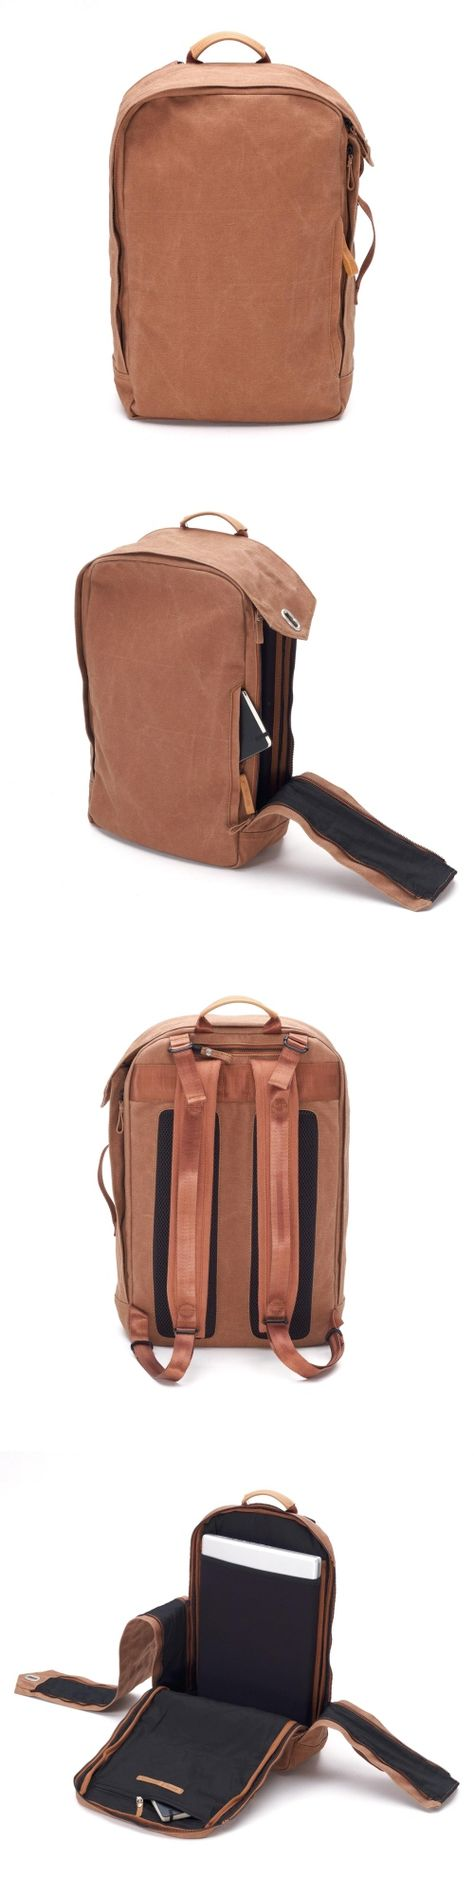 QWSTION 2012 - Backpack Washed Leather Brown | Raddest Men's Fashion Looks On…